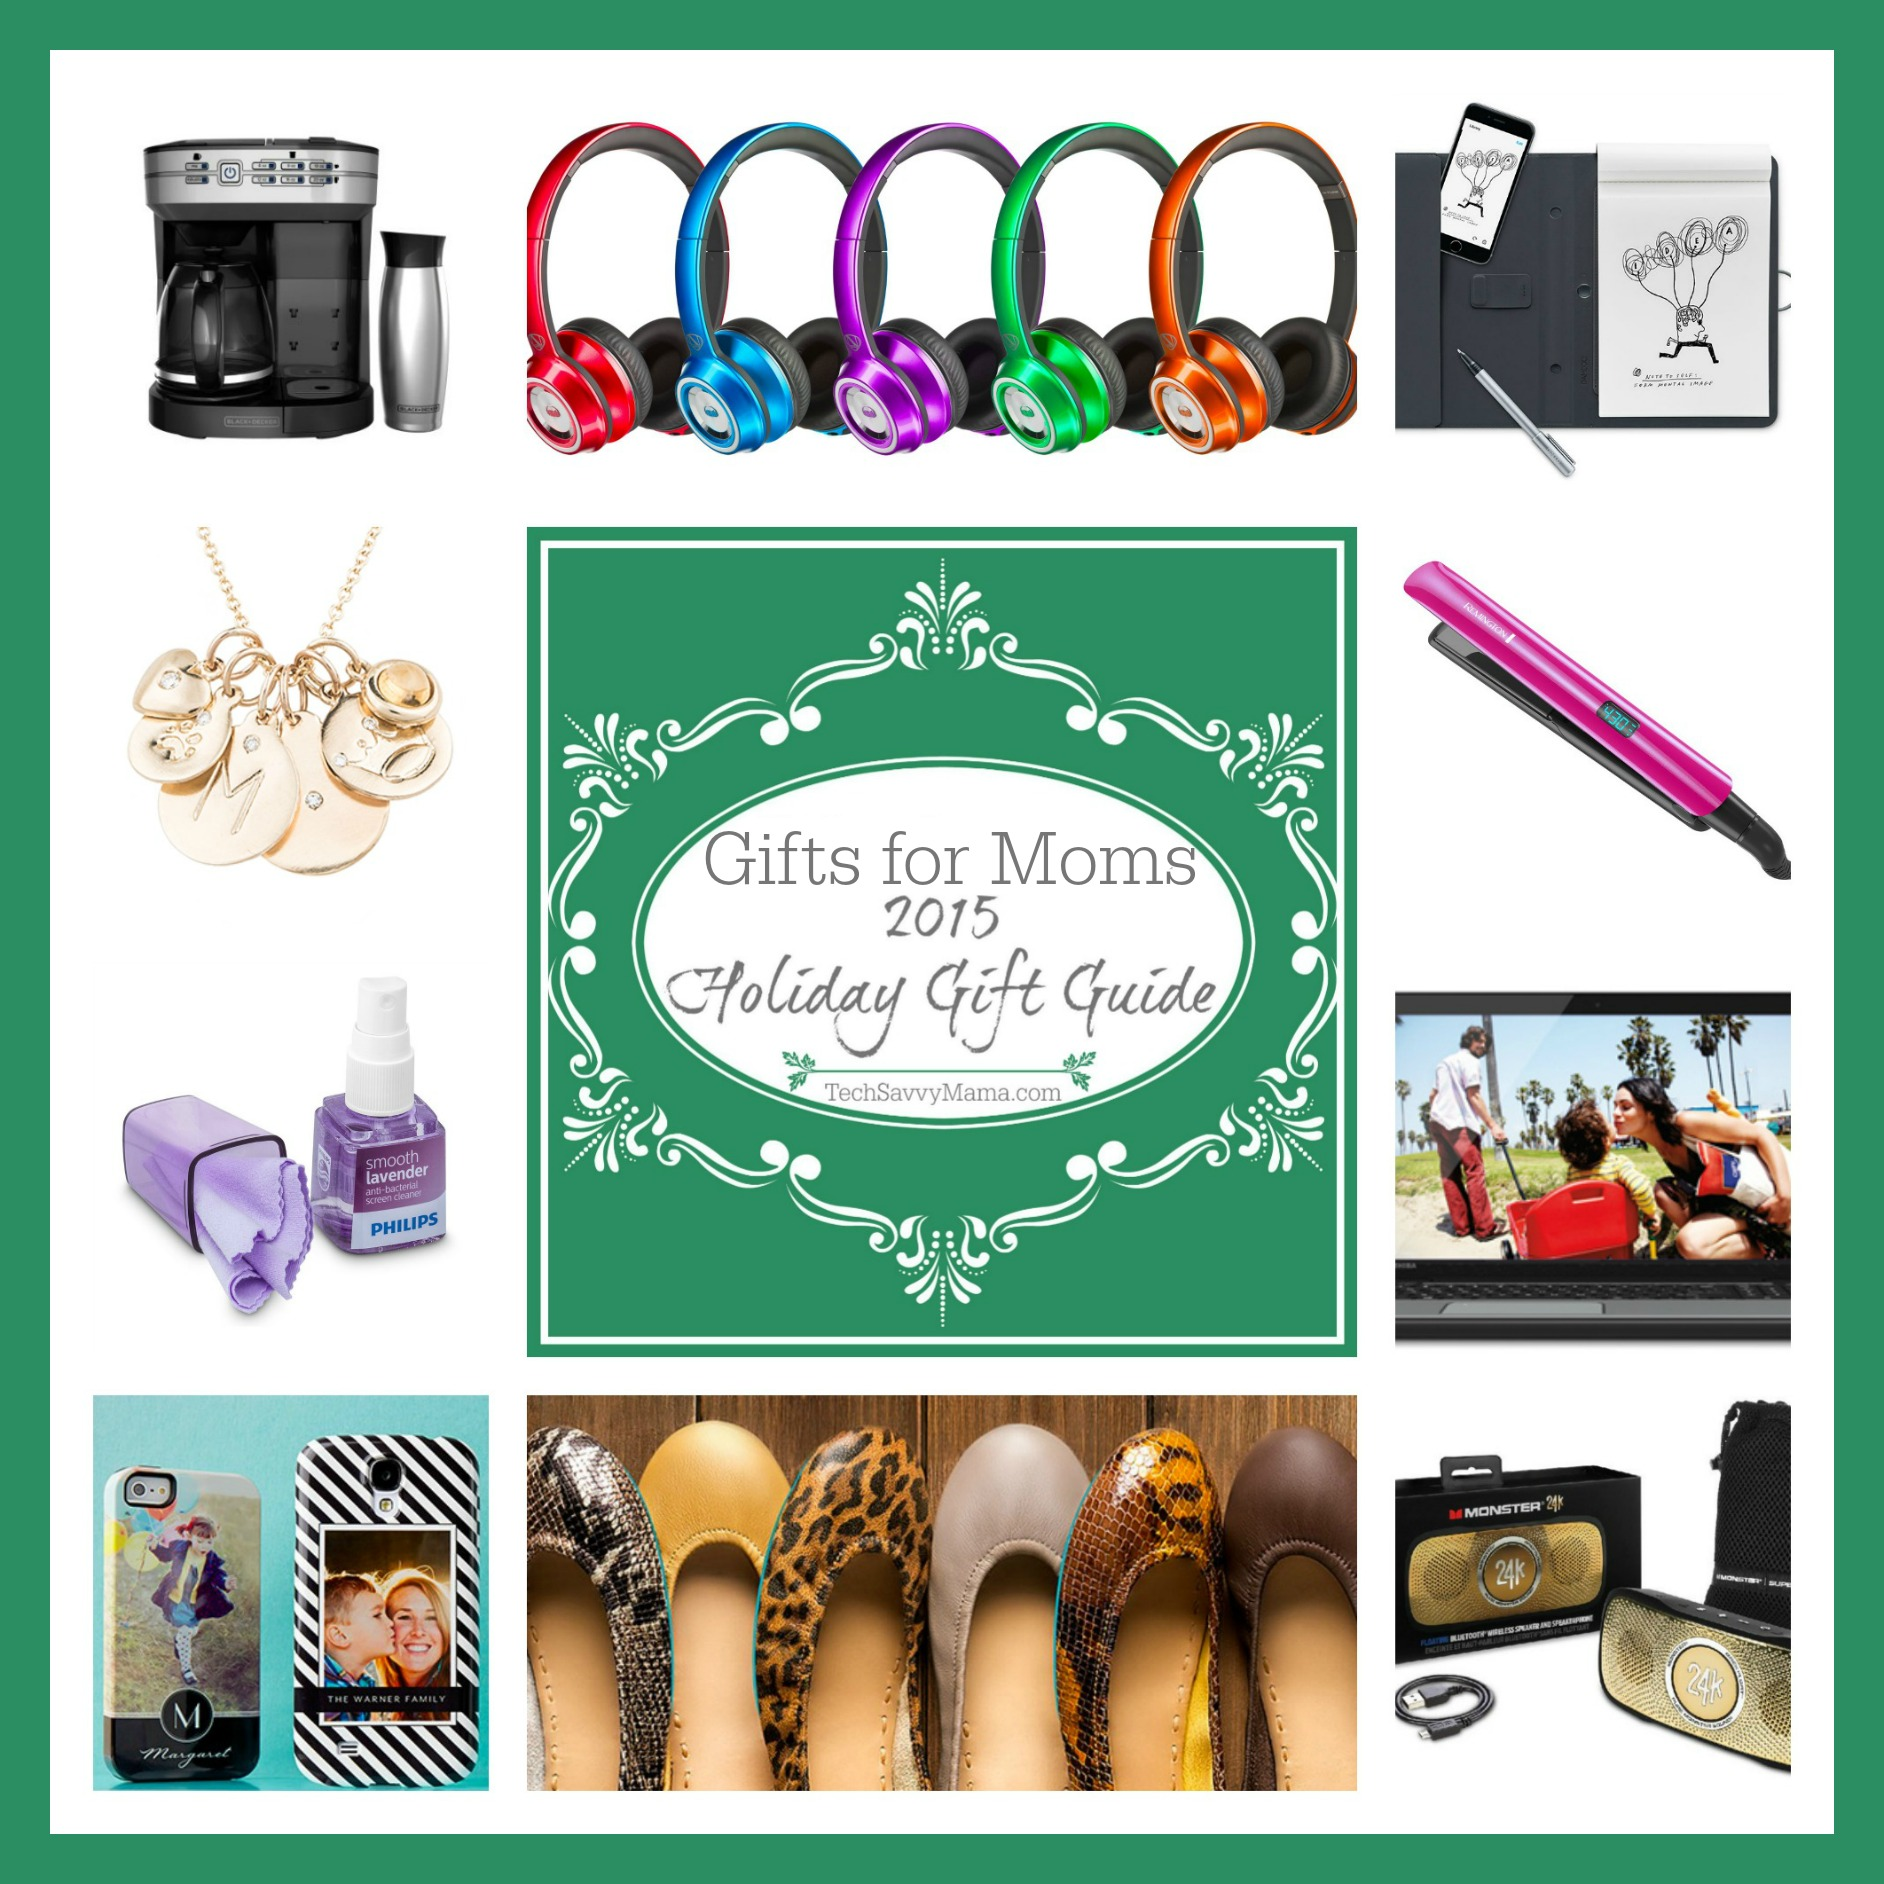 2015 Gift Guide: Gifts for Moms